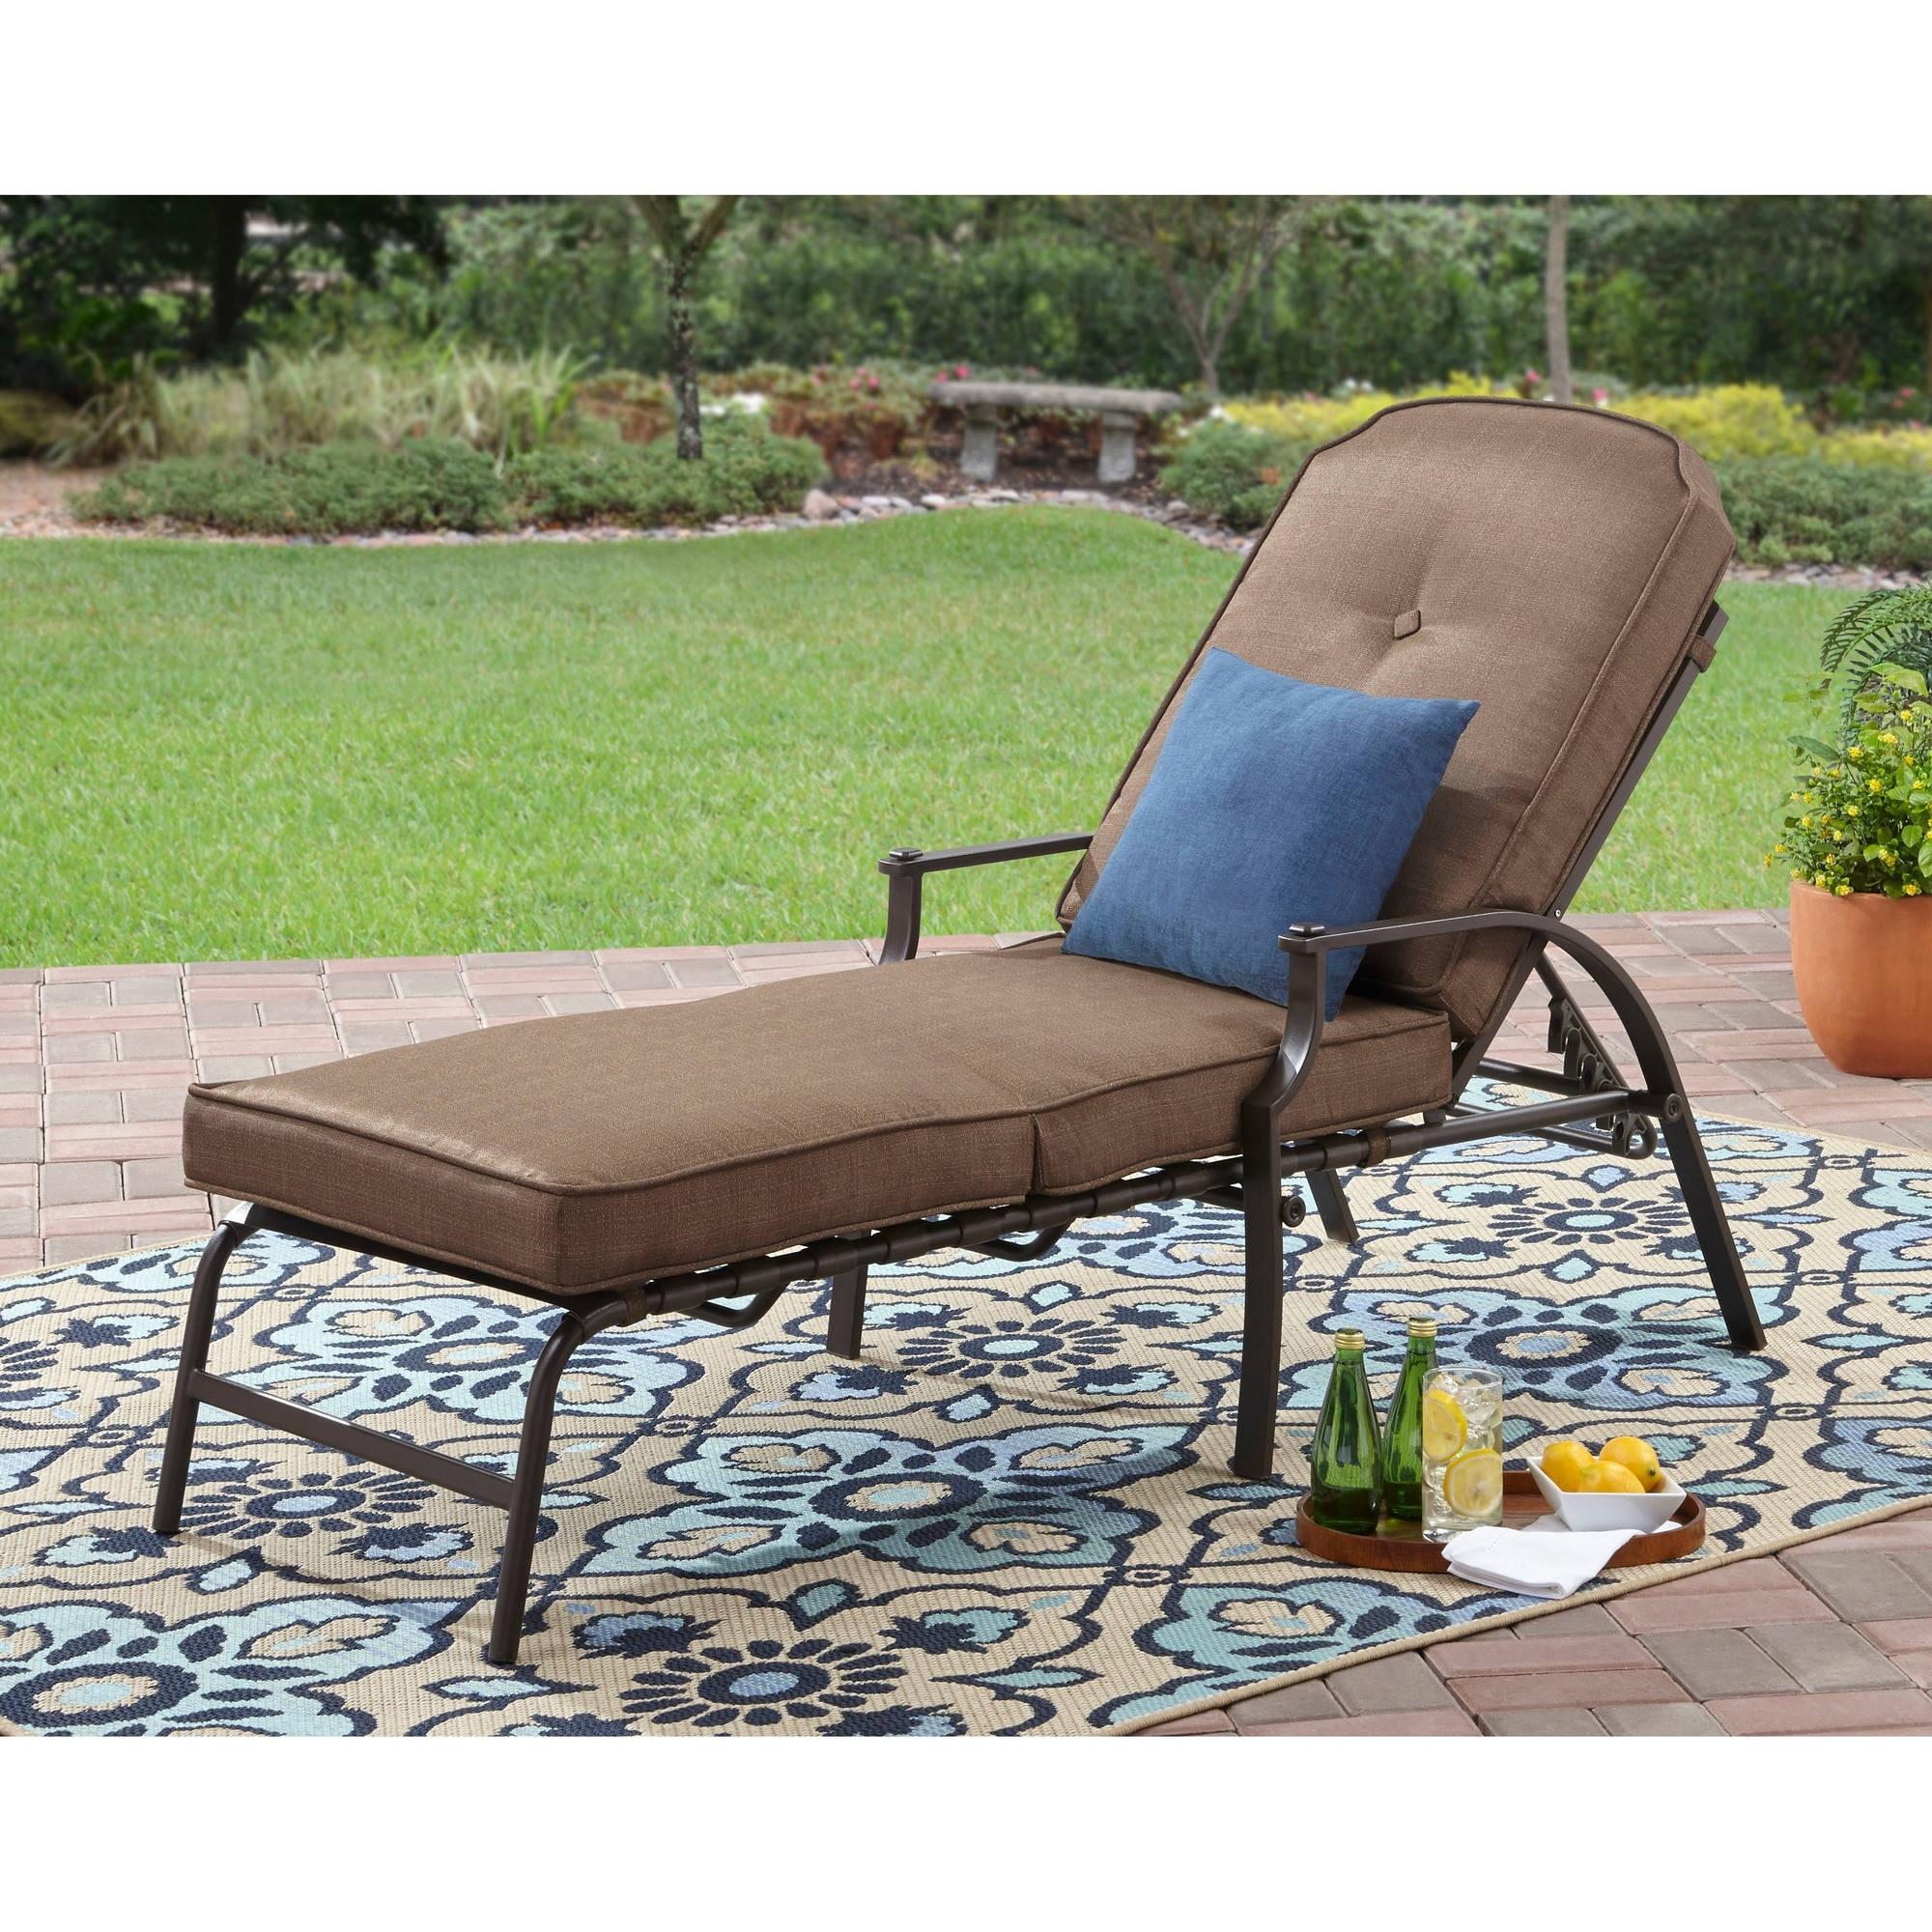 Walmart Outdoor Chaise Lounges Throughout Fashionable Mainstays Wentworth Chaise Lounge – Walmart (View 13 of 15)